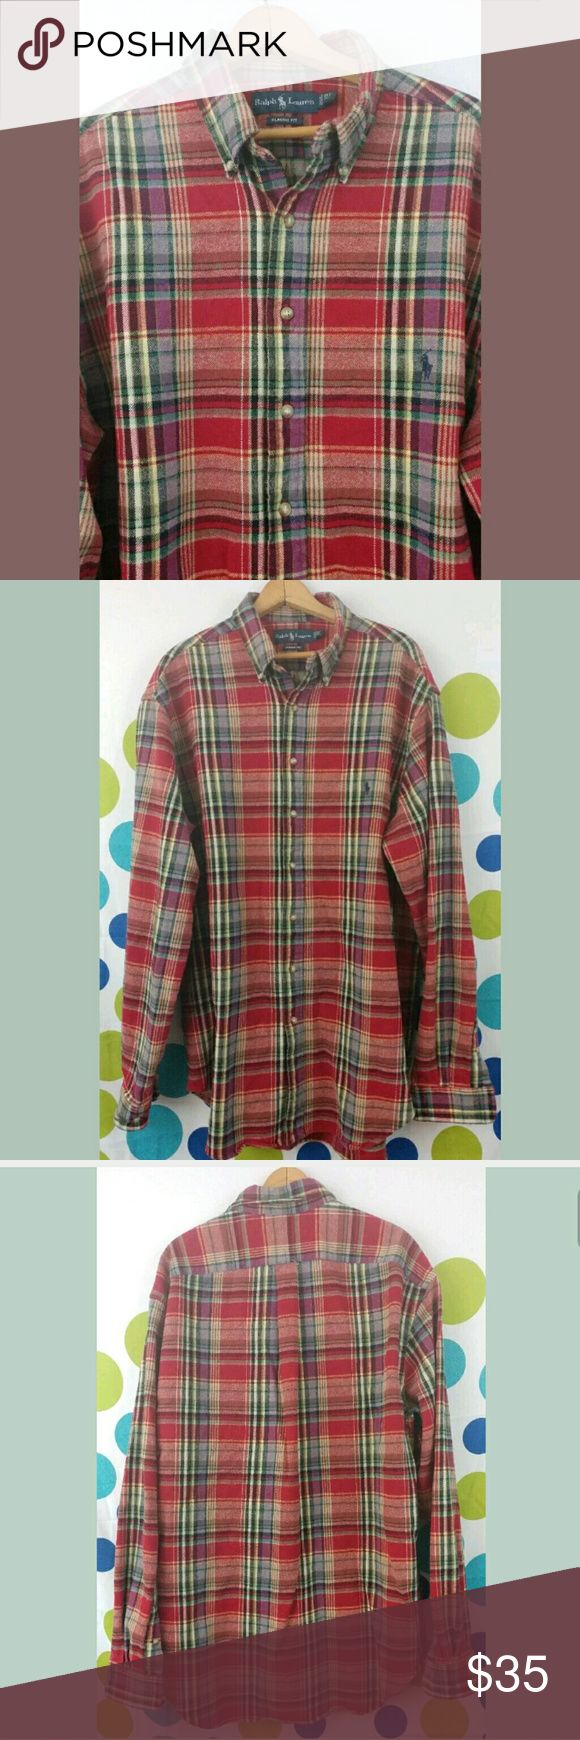 Ralph Lauren Red Plaid XLT Flannel Hello and thank you for checking out my items!  Mens Ralph Lauren Flannel Button Down Shirt  Size XLT  100% Cotton   Red plaid   27 inches across chest from pit to pit  31 inches from shoulder down to end Ralph Lauren Shirts Casual Button Down Shirts